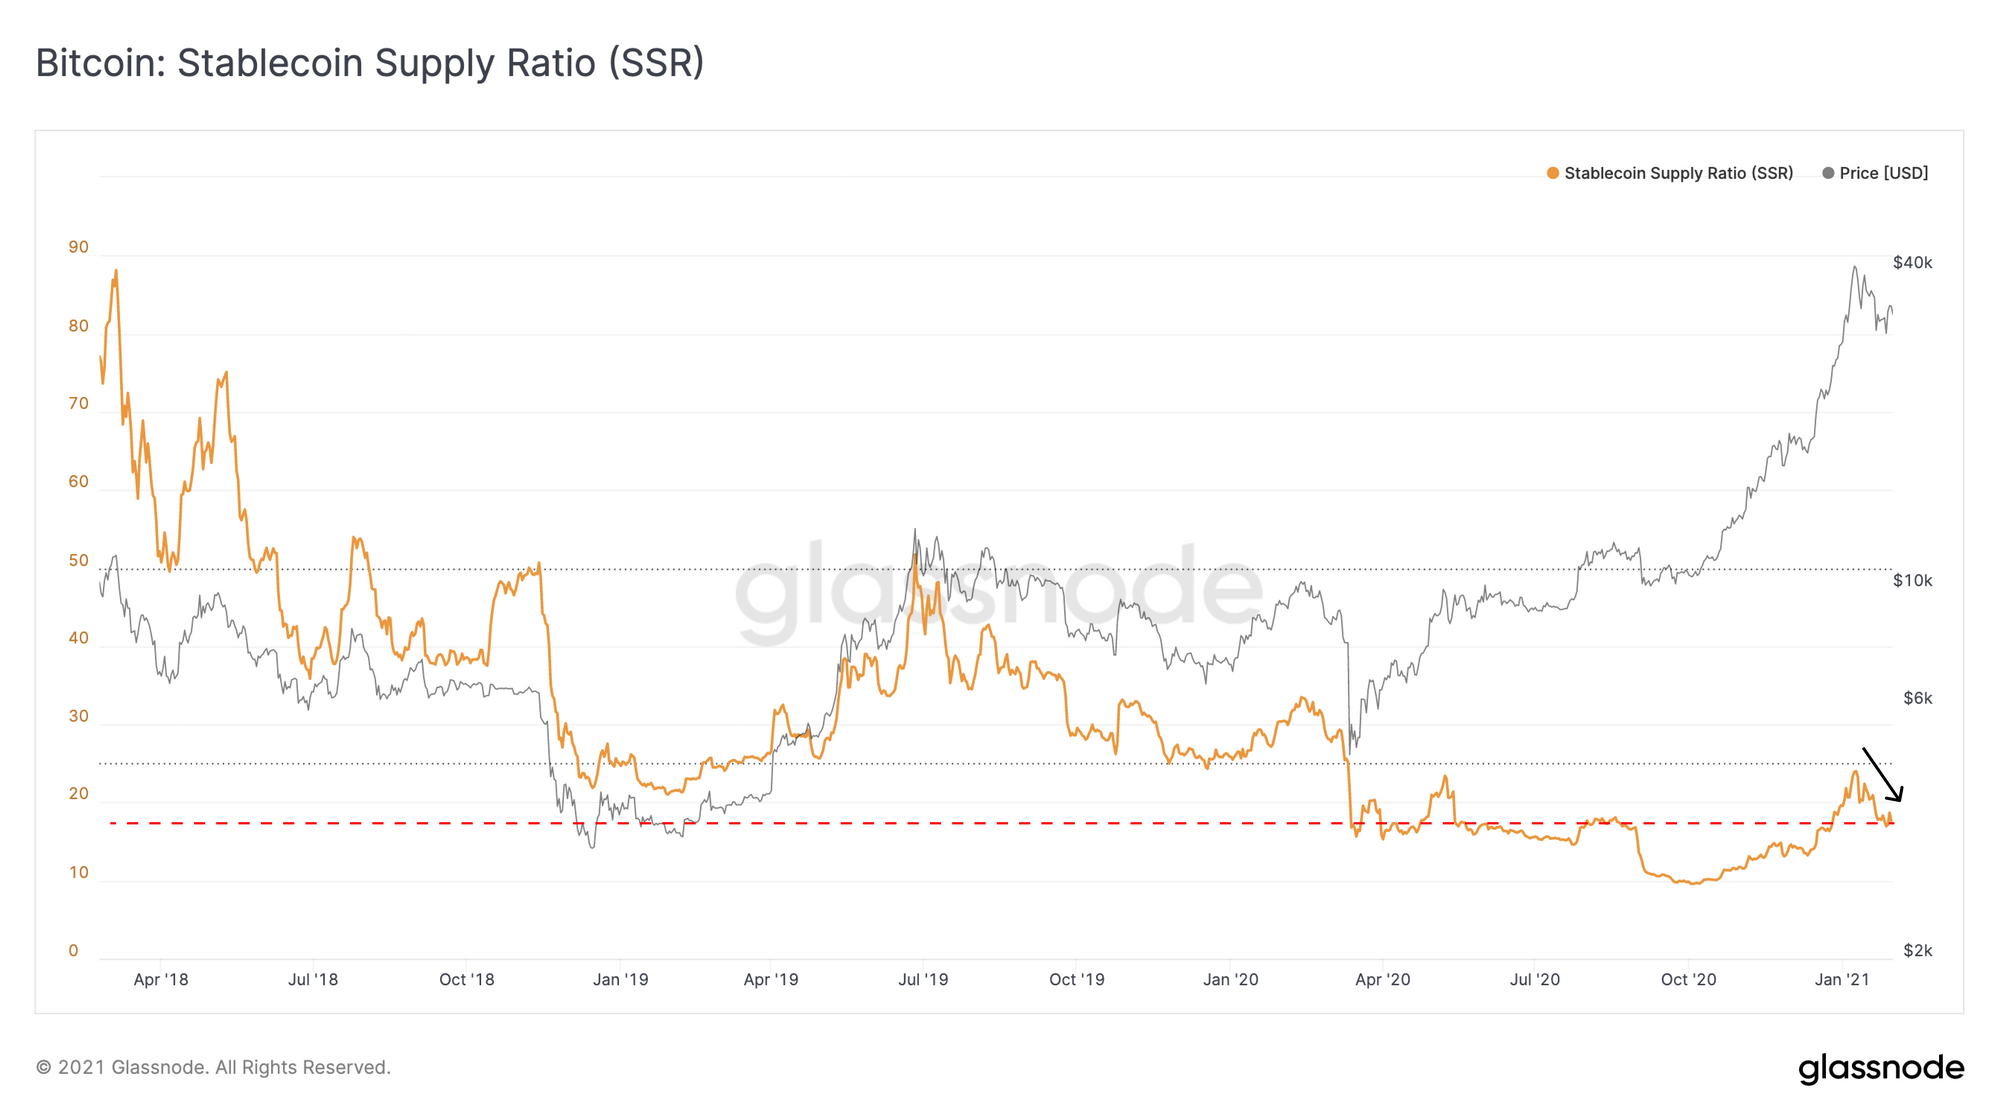 Bitcoin Stablecoin Supply Ratio by Glassnode